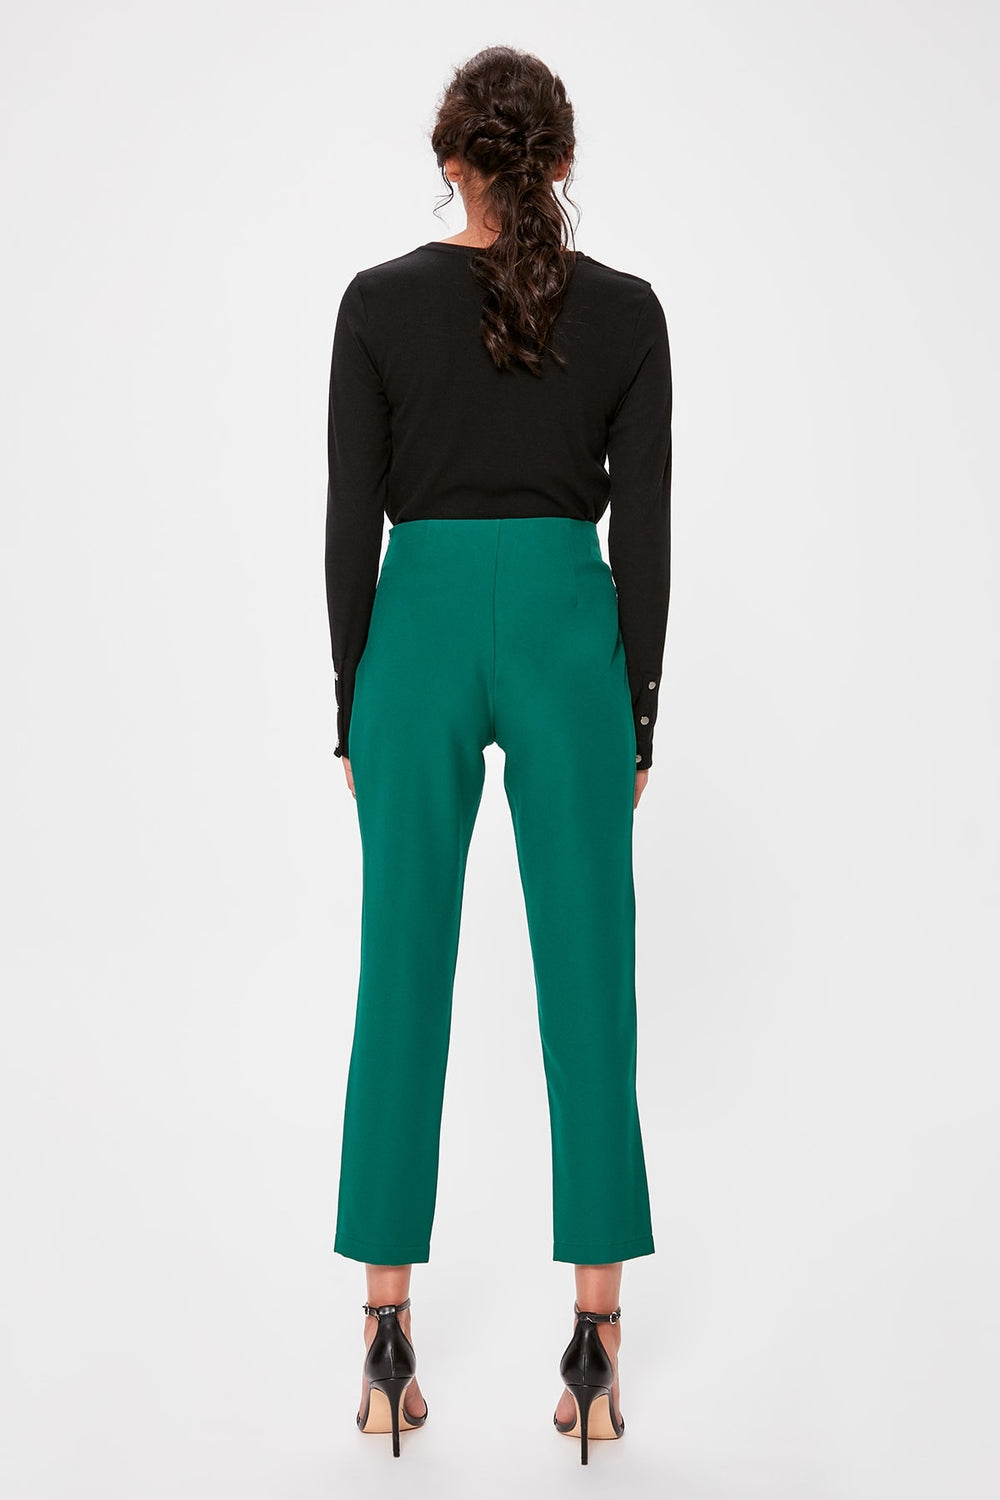 Emerald green Basic Pants - Top Maxy